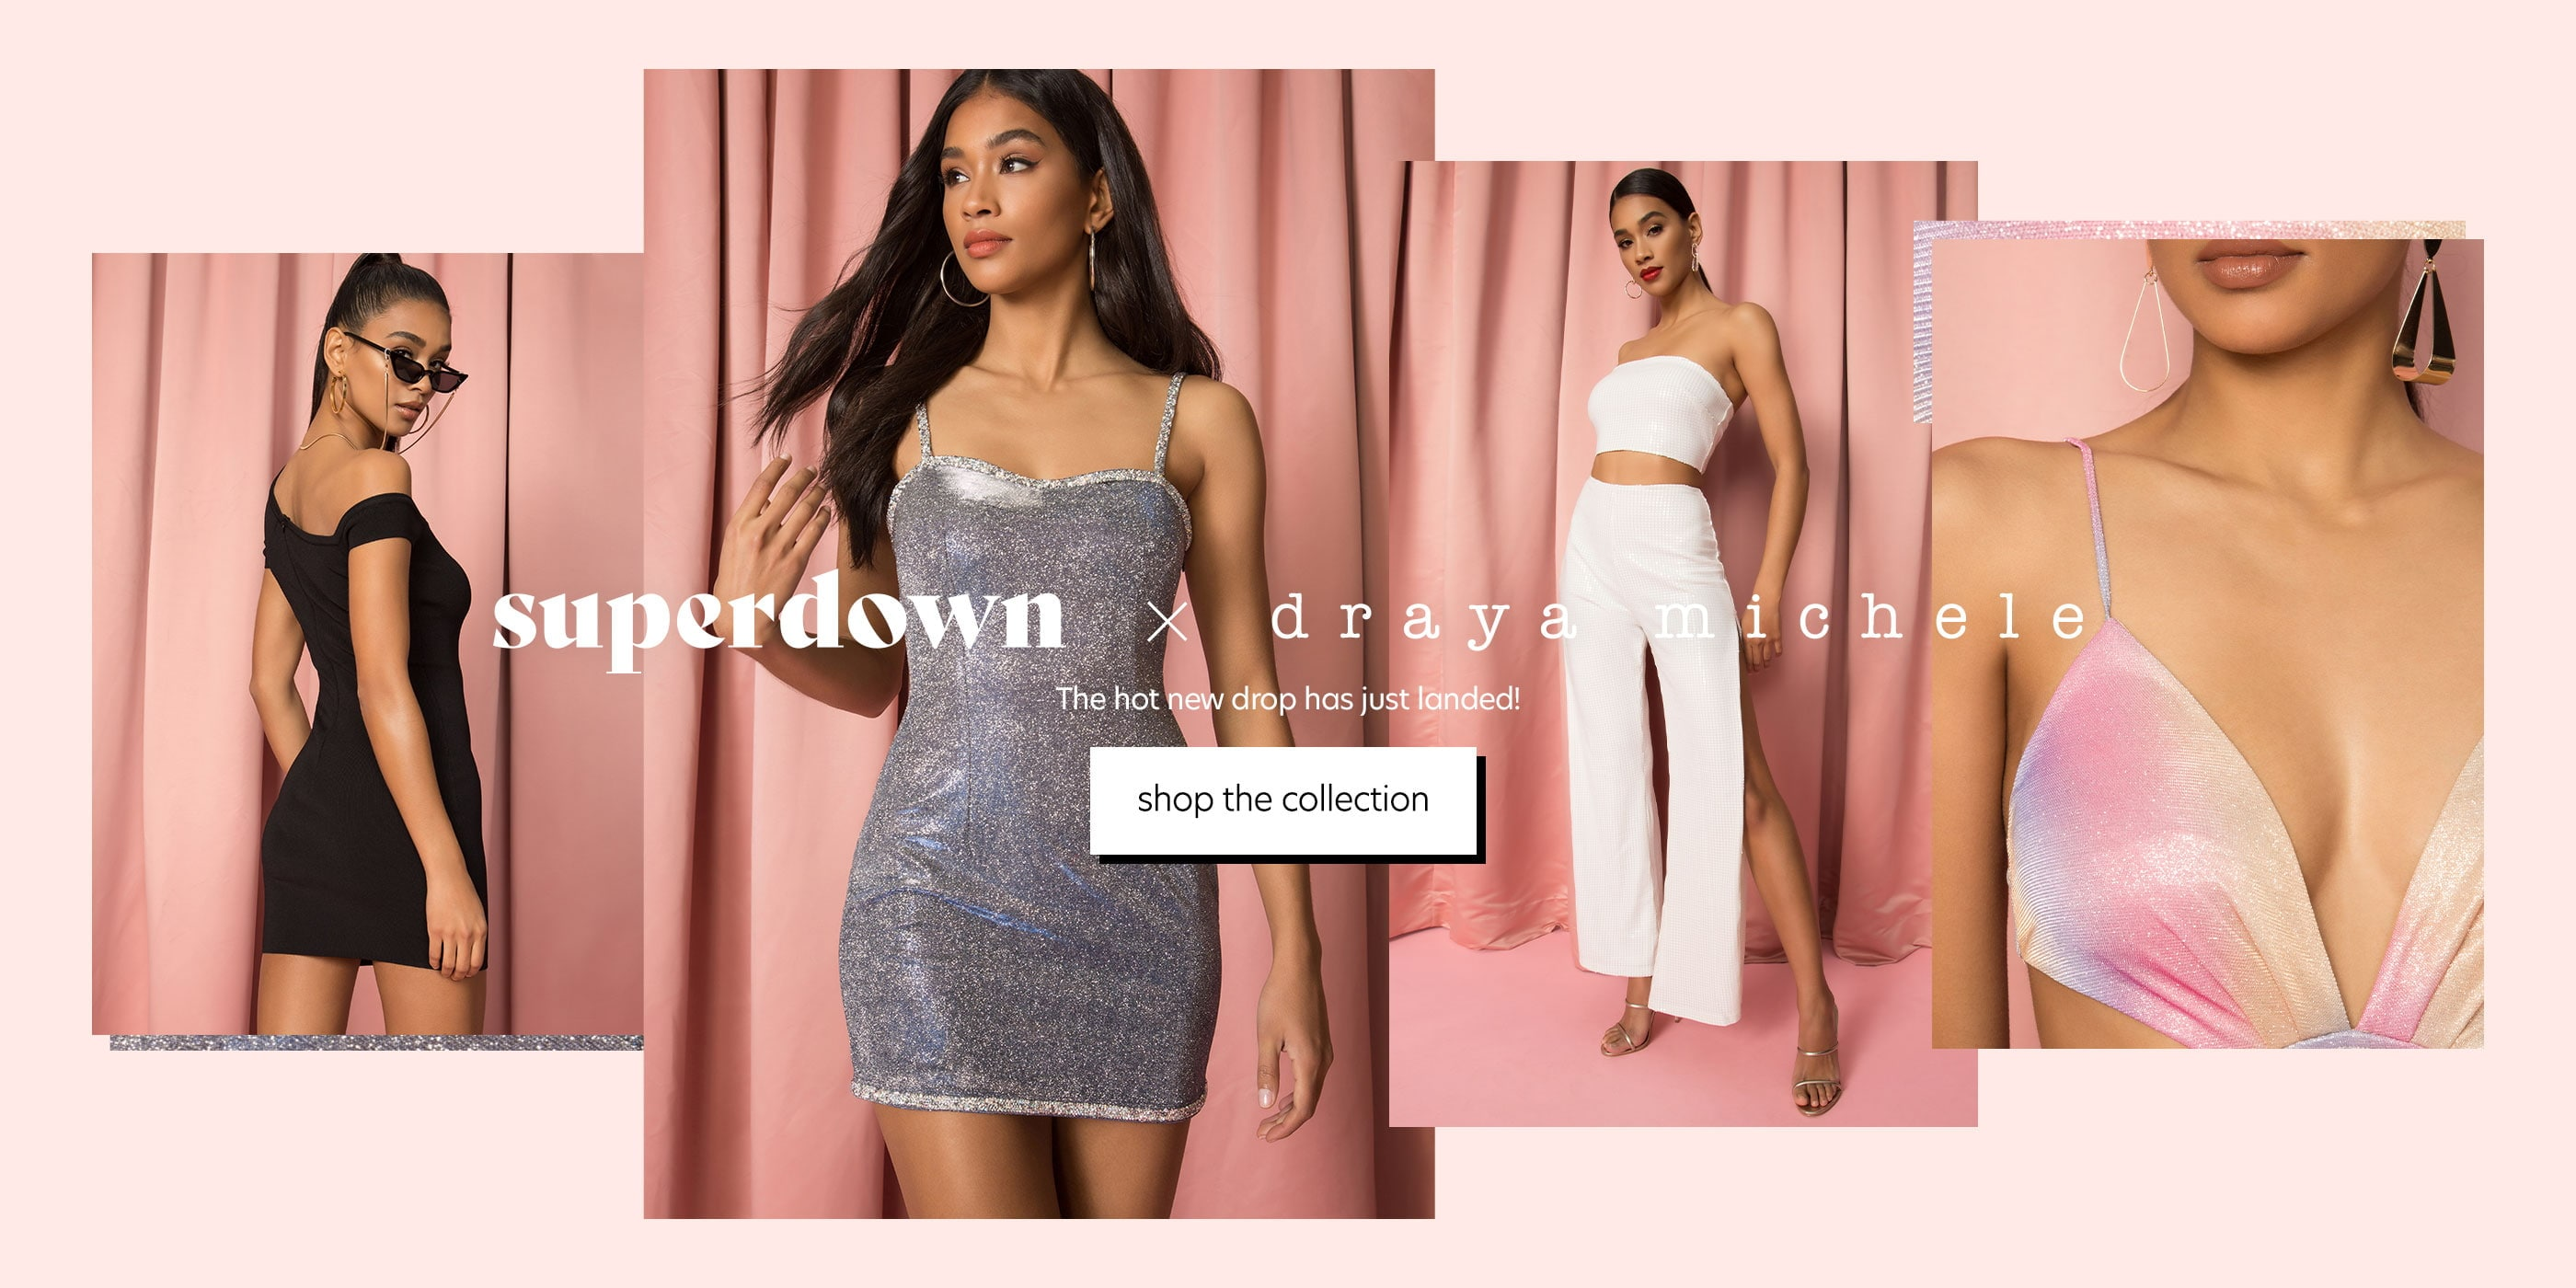 superdown x draya michele. The hot new drop has just landed! shop the collection